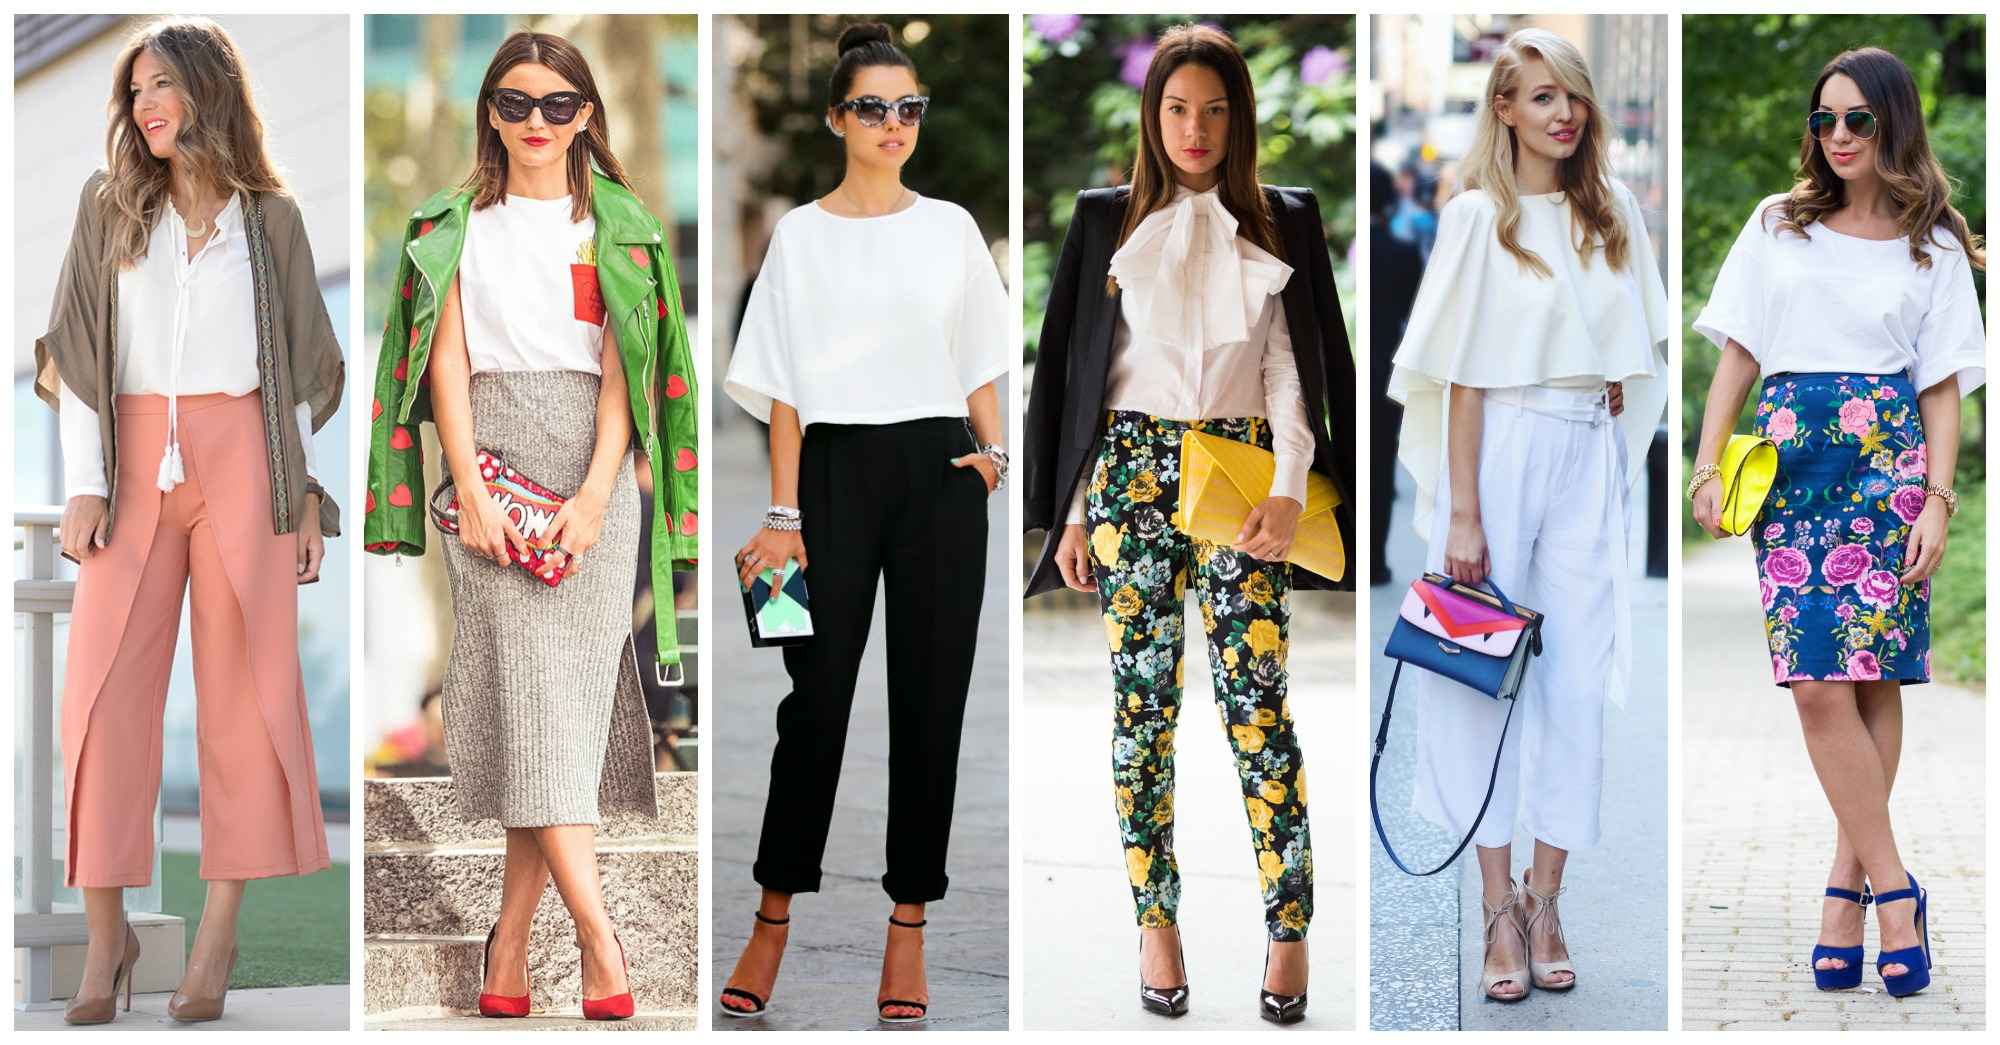 Classy and Stylish Office Outfits to Copy This Spring